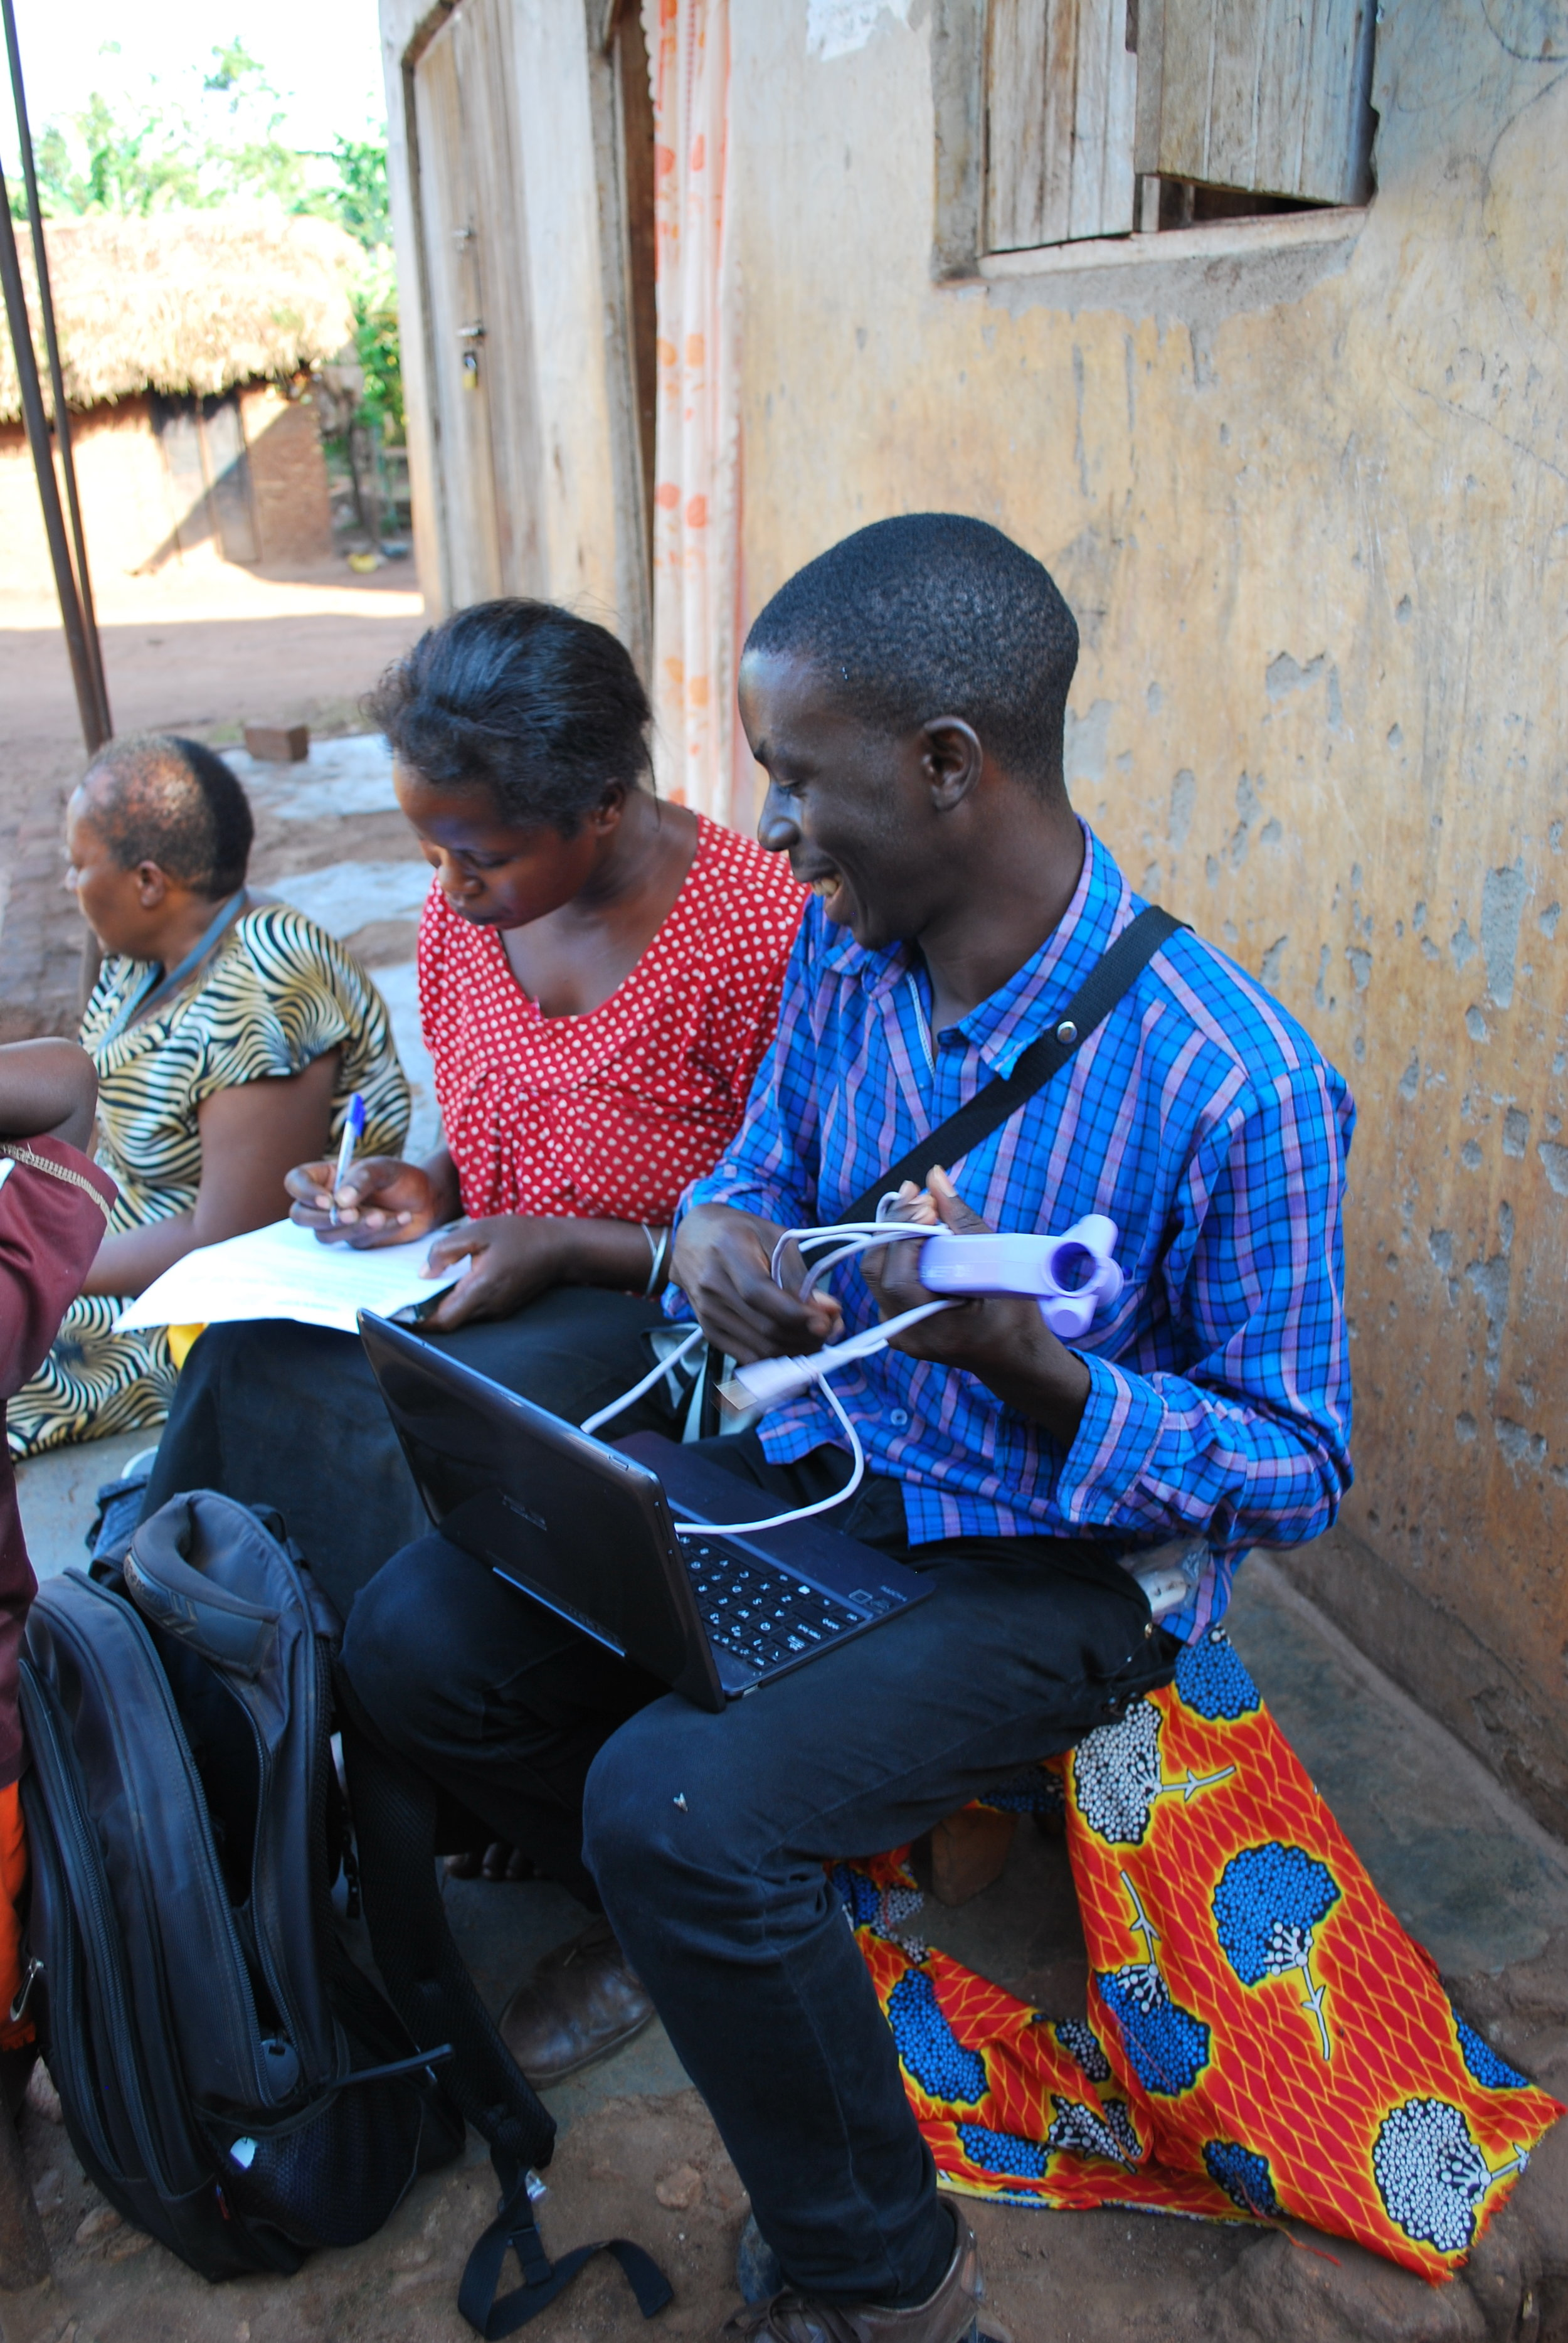 Field worker Denis receives informed consent from a study participant in Nakaseke.